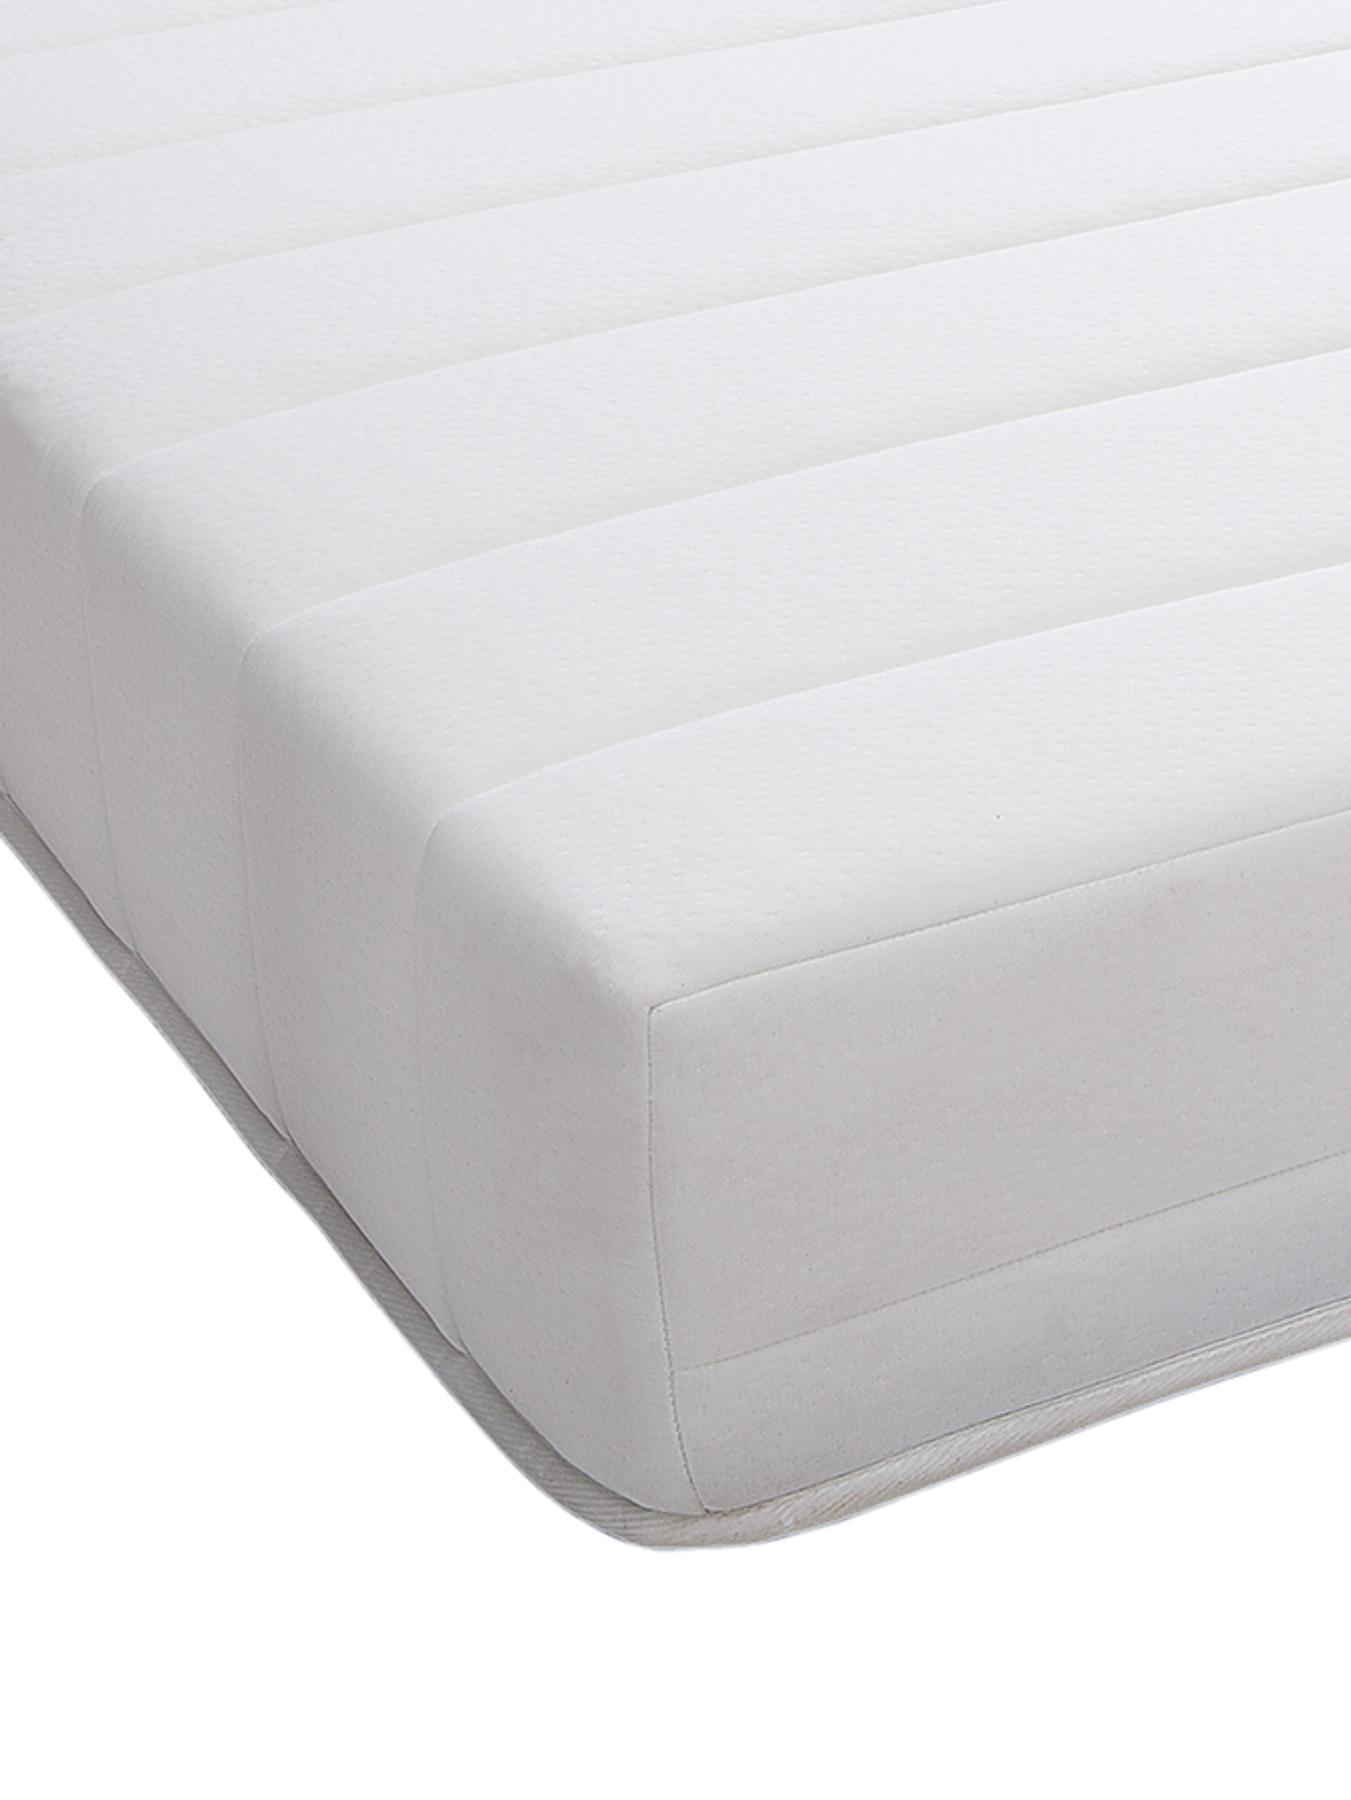 Hush from Airsprung Pocket Foam Rolled Mattress